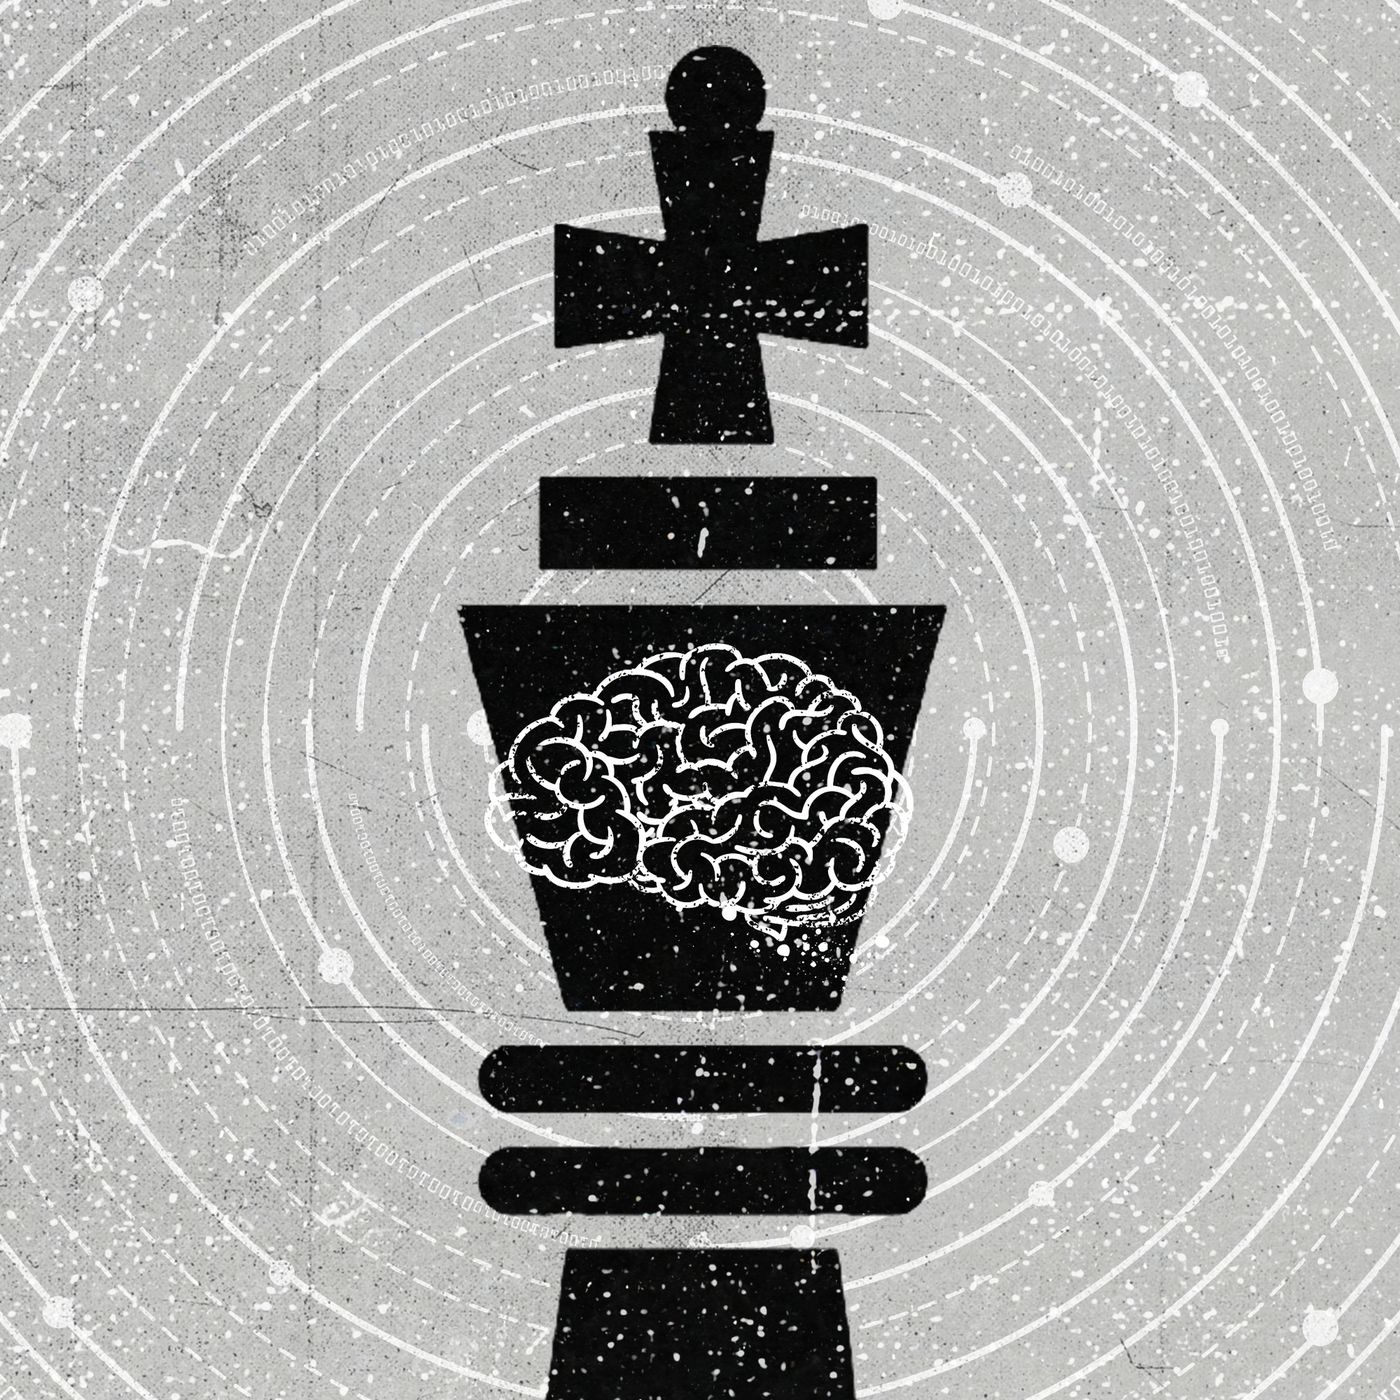 Ai Taught Itself To Be The Best Chess Player In The Worldwhats